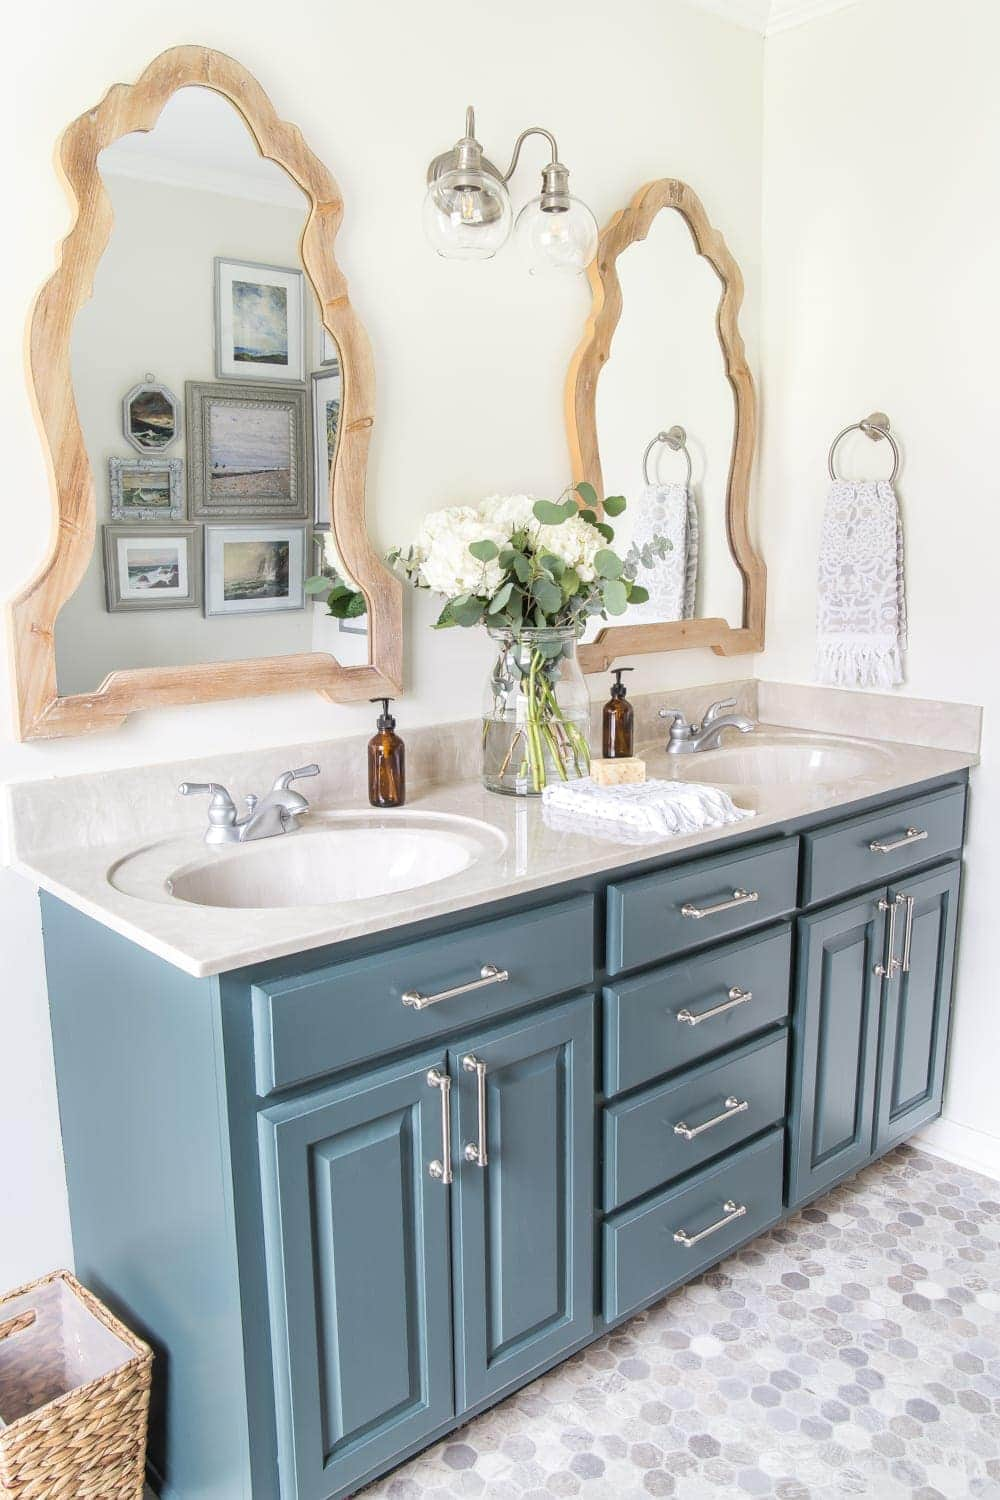 Budget Master Bathroom Refresh Reveal | Vinyl hexagon tile floor, wooden arch mirrors, and DIY painted vanity